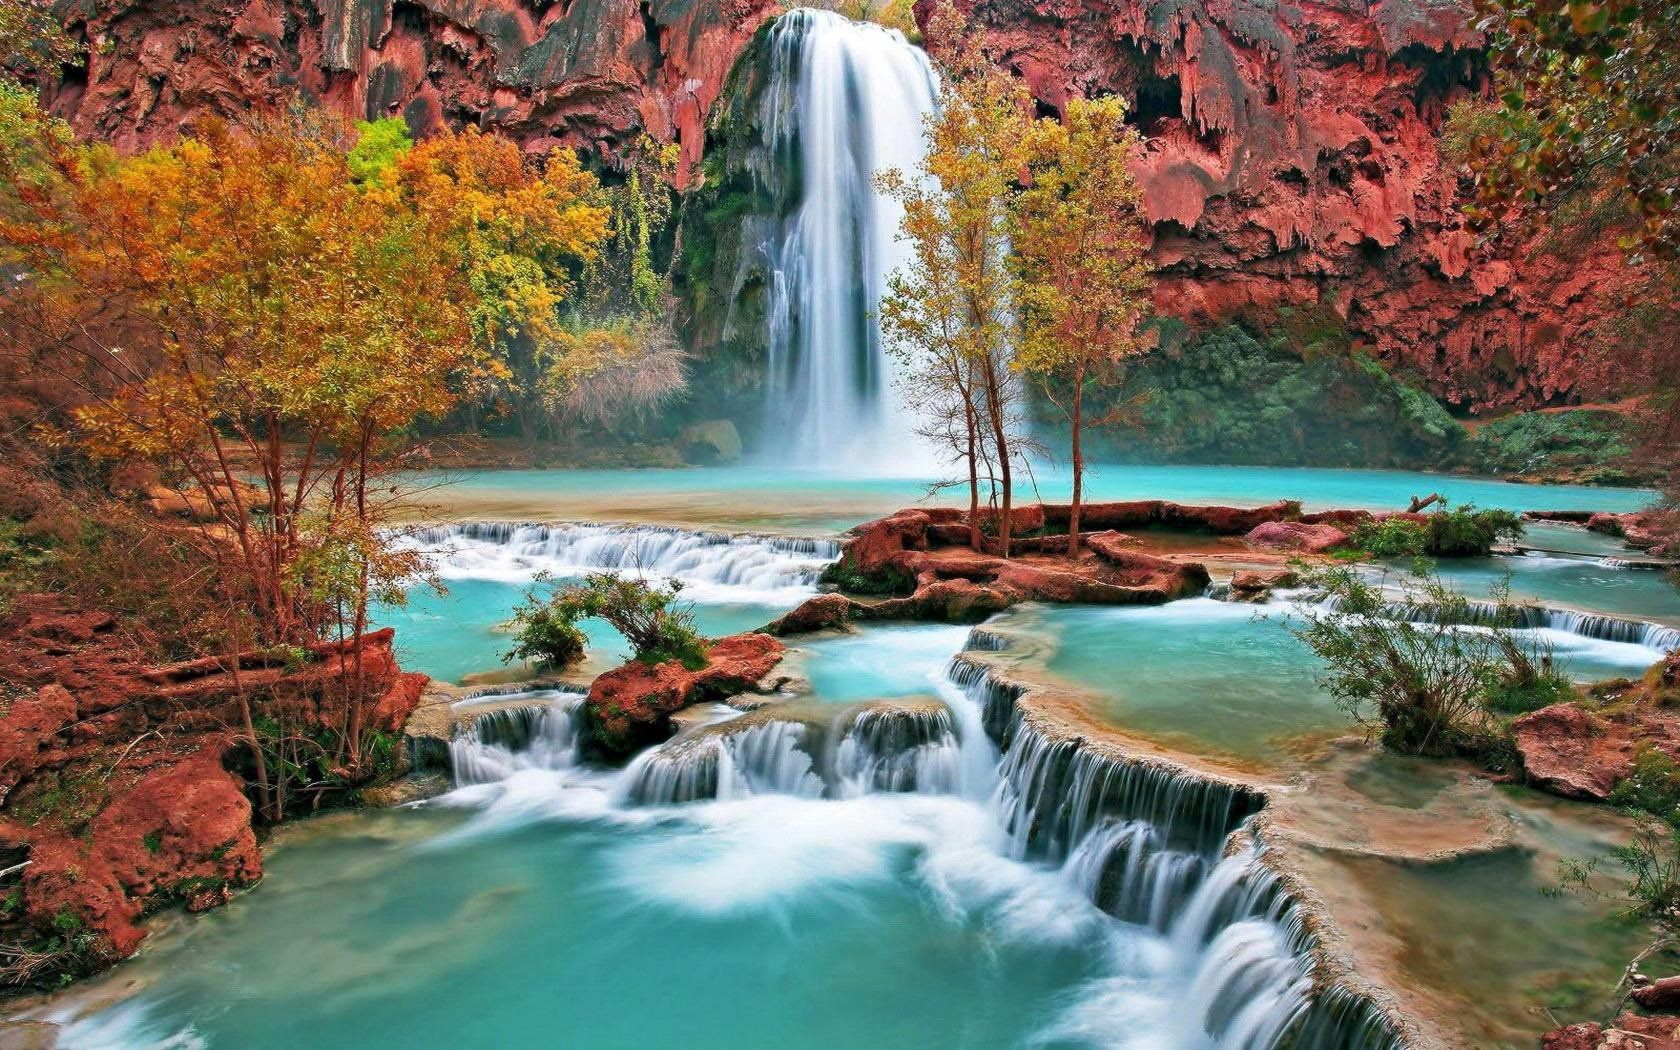 Waterfall Wallpaper – Relaxing, Refreshing Images of Nature